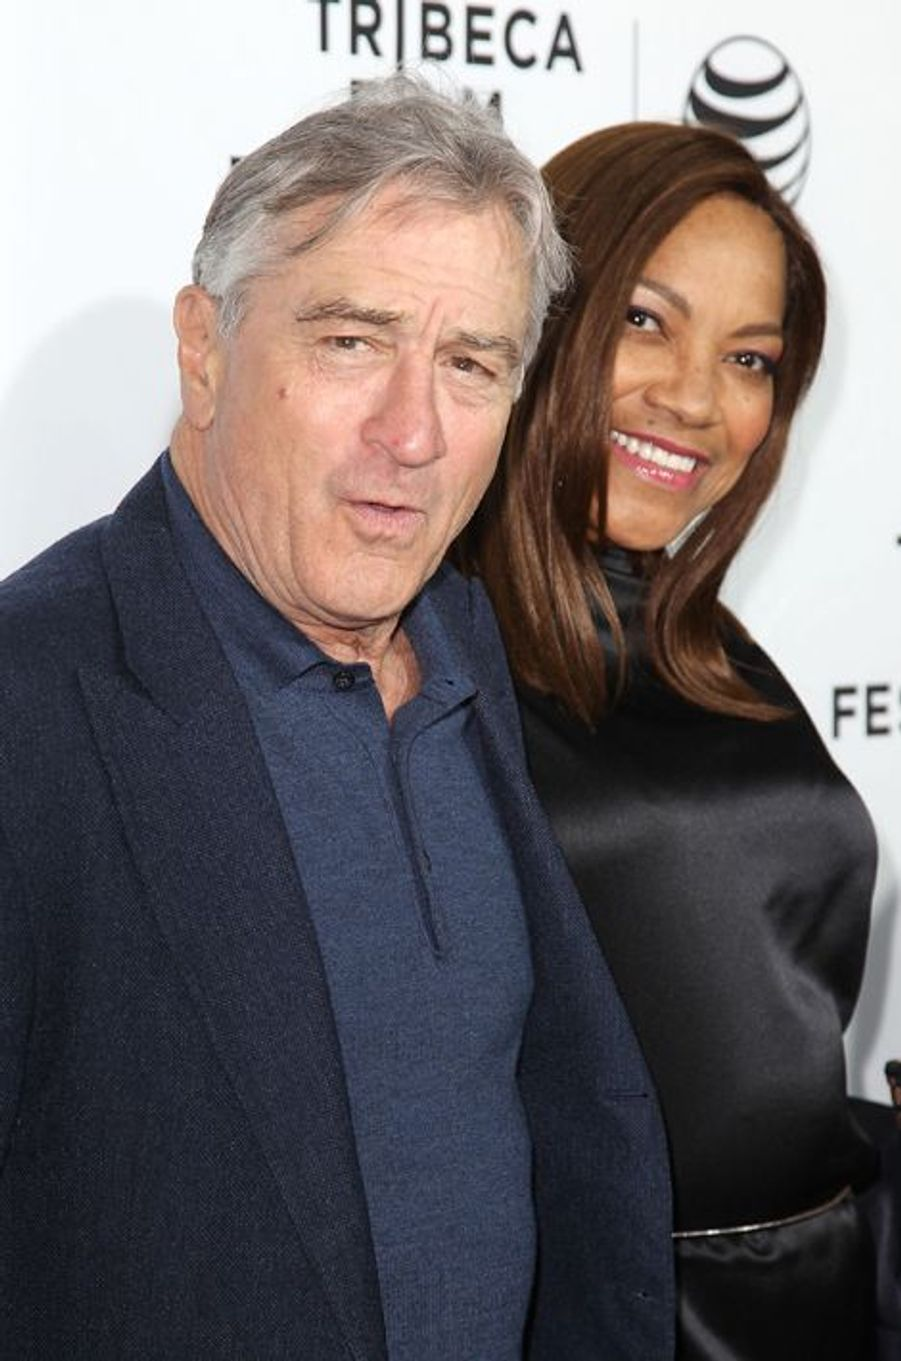 Robert De Niro et son épouse, Grace Hightower, à New York le 15 avril 2015